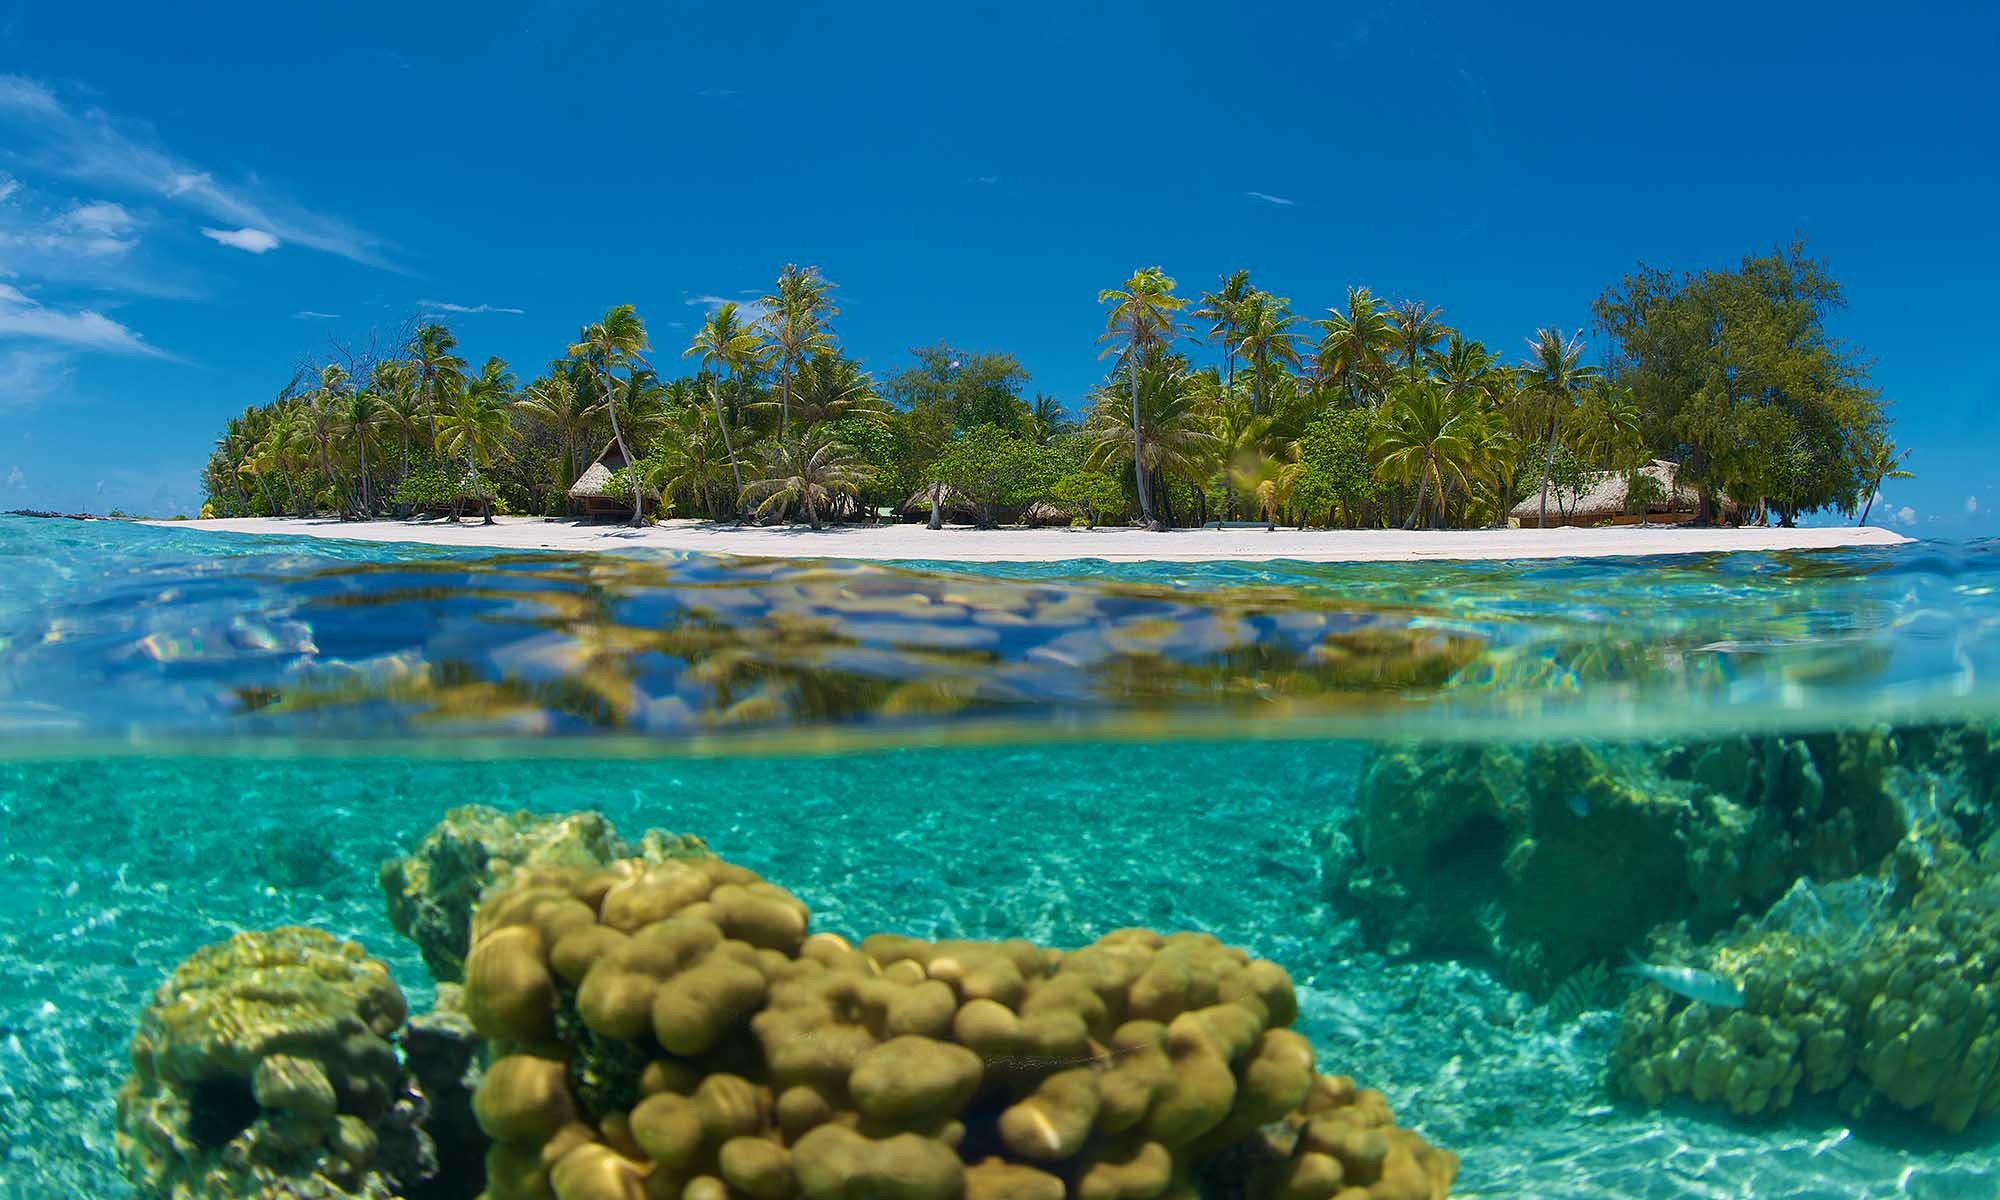 Coral and Marine Life in Rangiroa's Lagoon